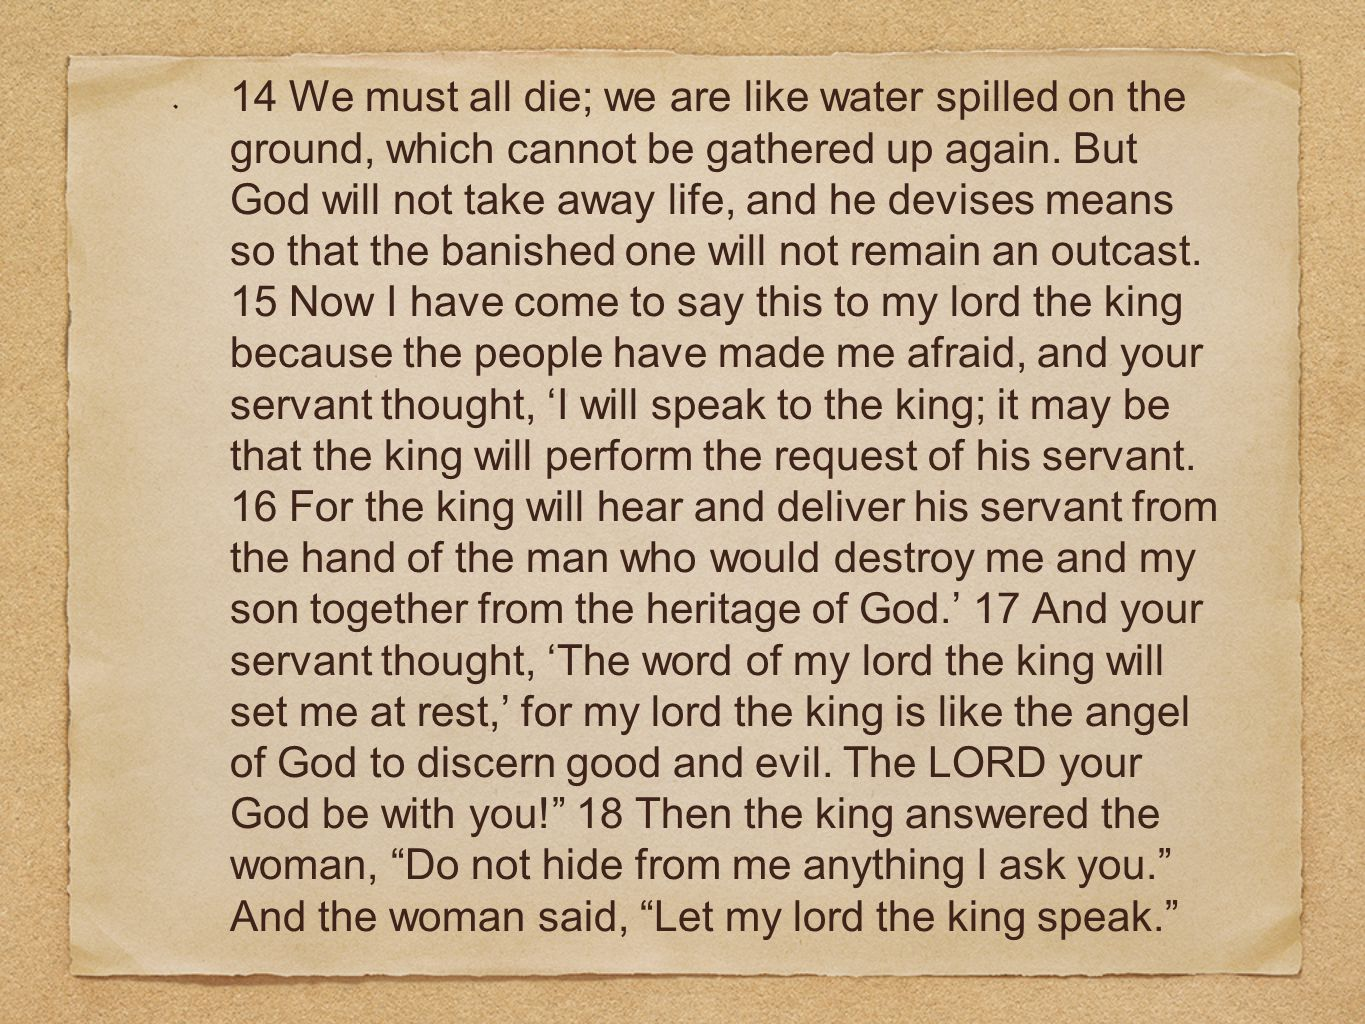 14 We must all die; we are like water spilled on the ground, which cannot be gathered up again. But God will not take away life, and he devises means